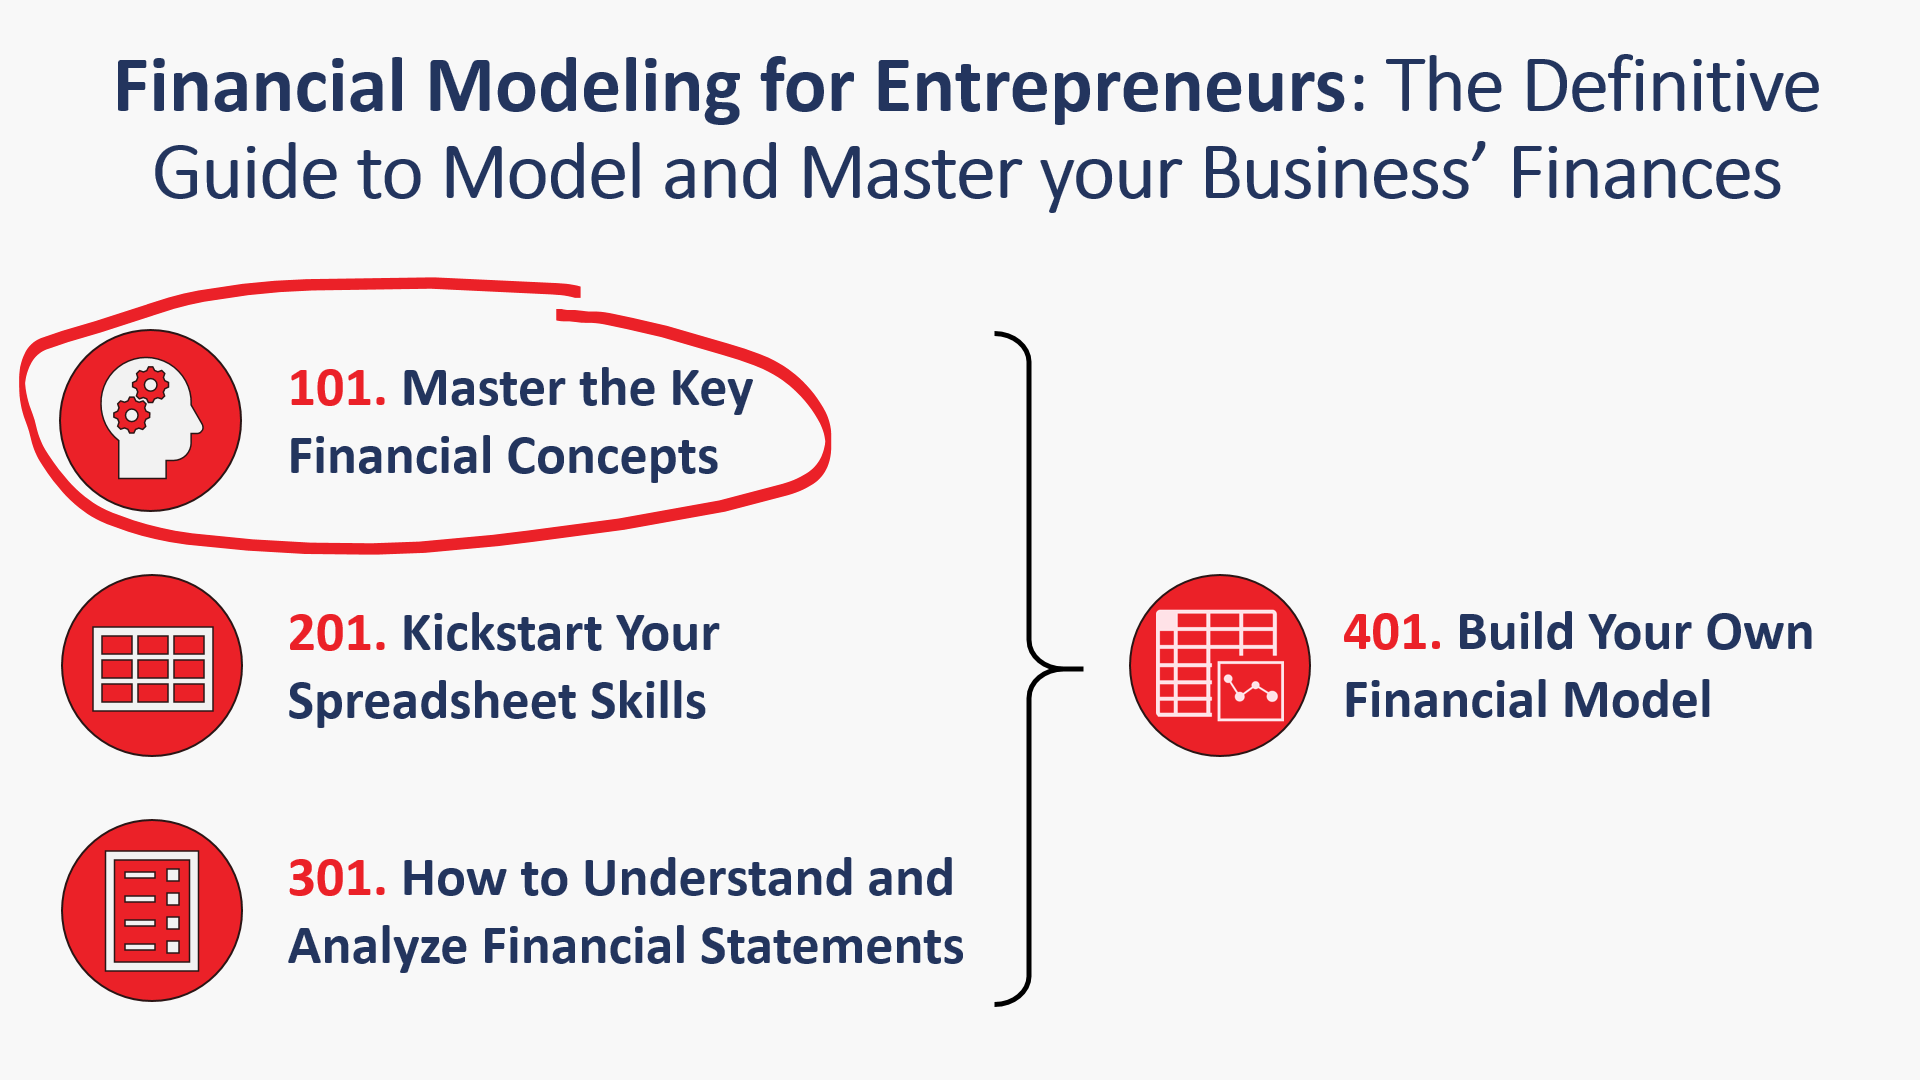 Financial Modeling for Entrepreneurs Course Series